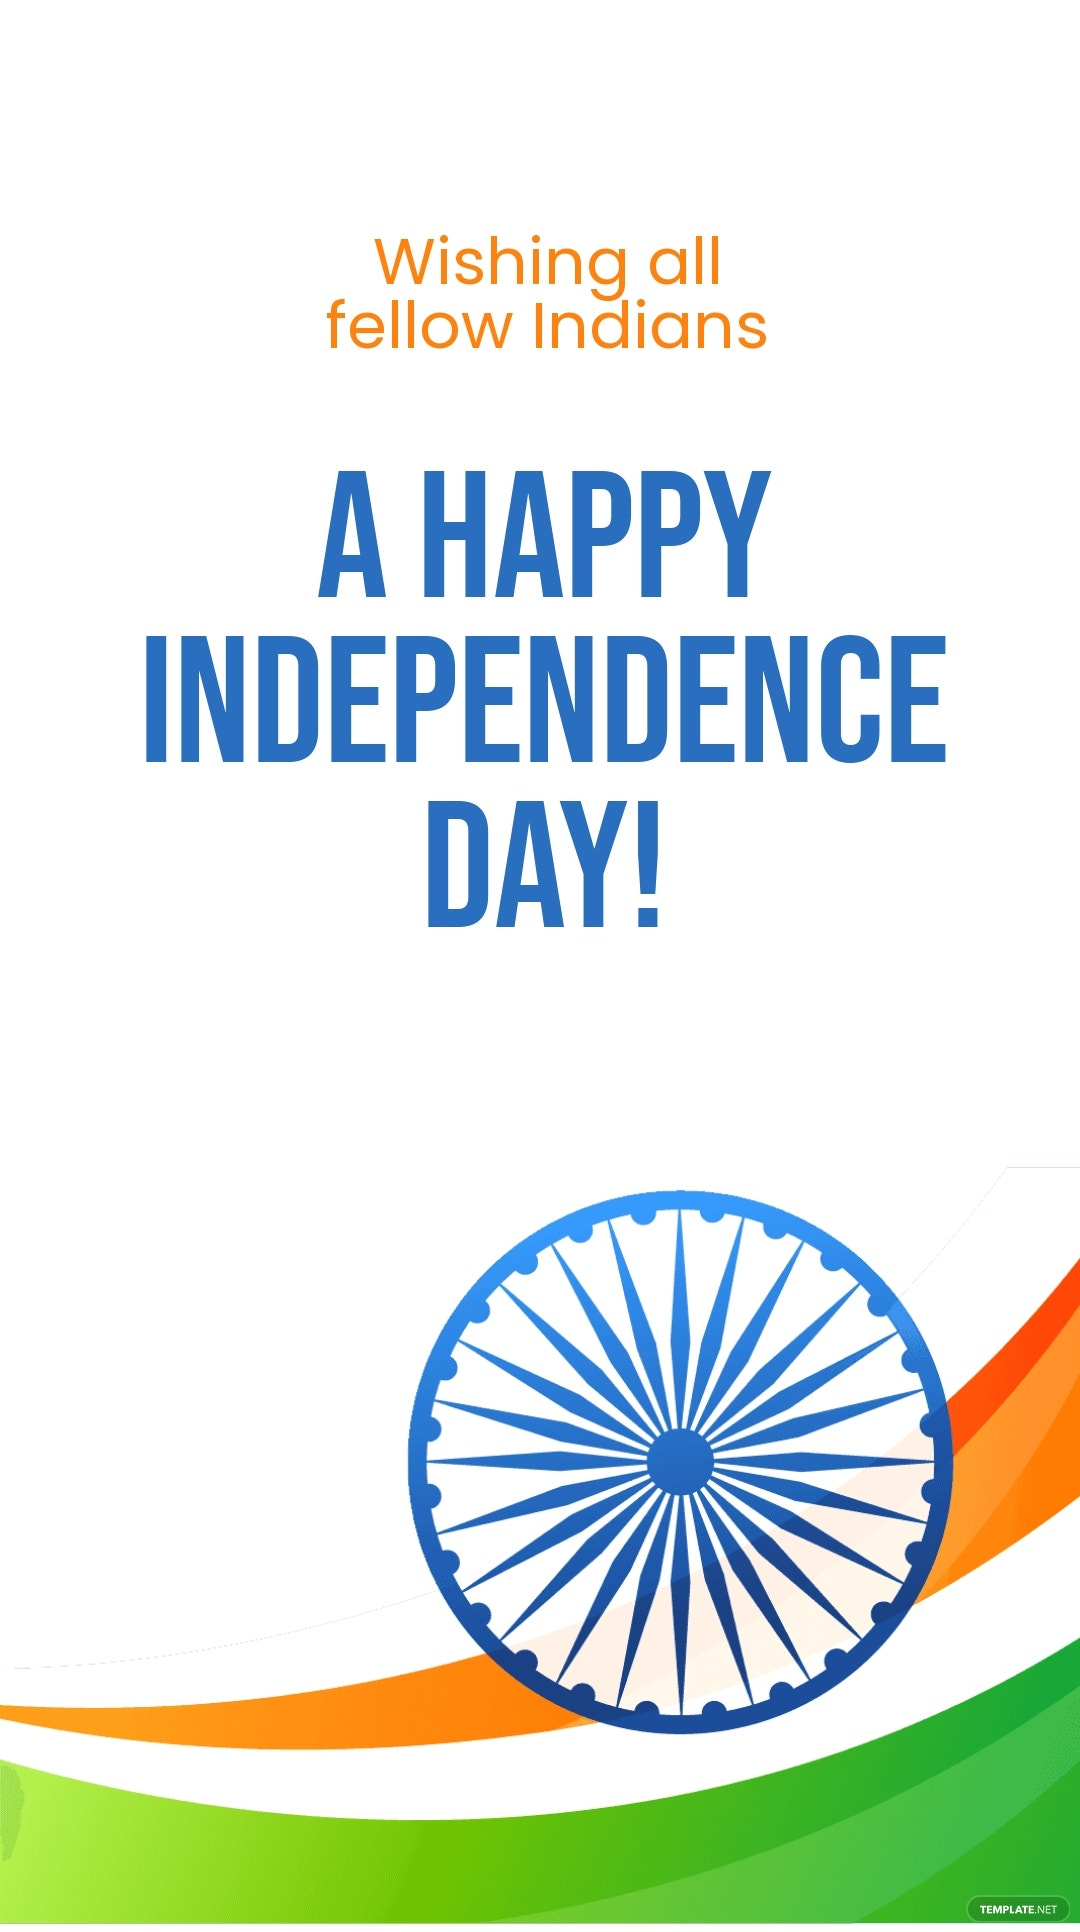 Happy Indian Independence Day Instagram Story Template.jpe